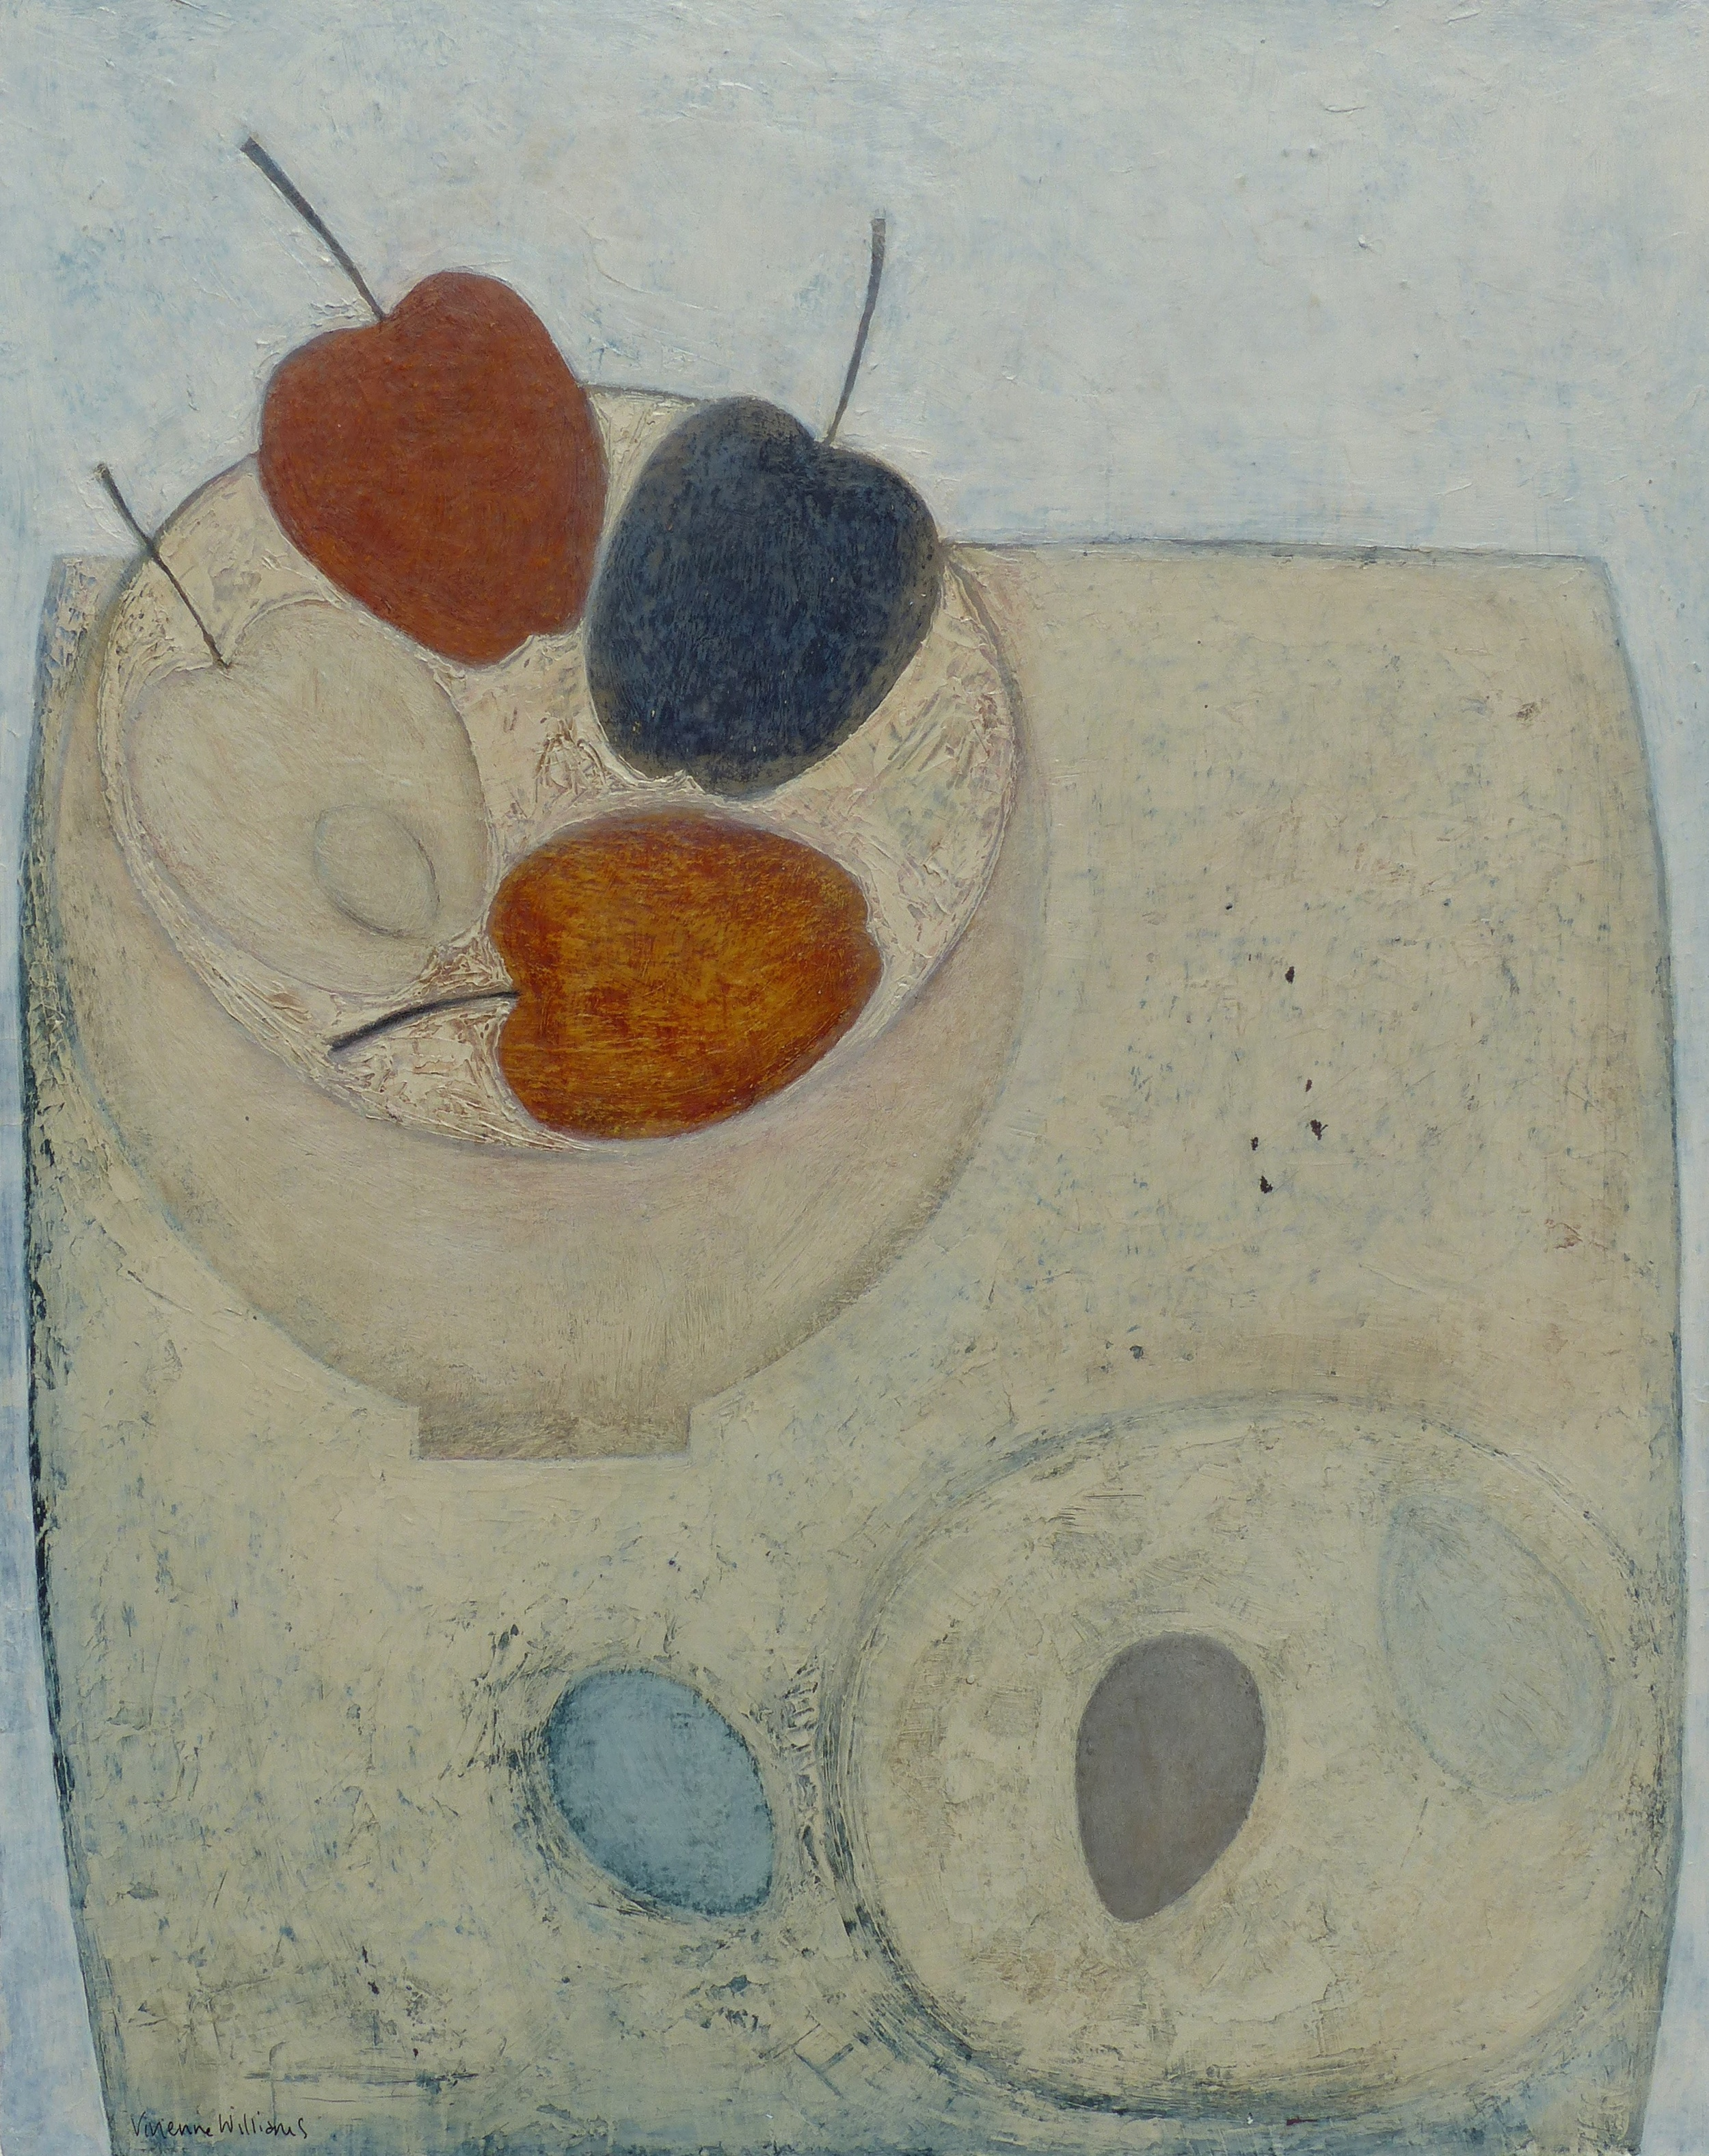 Apples and Eggs, 51cm x 41cm, 2015